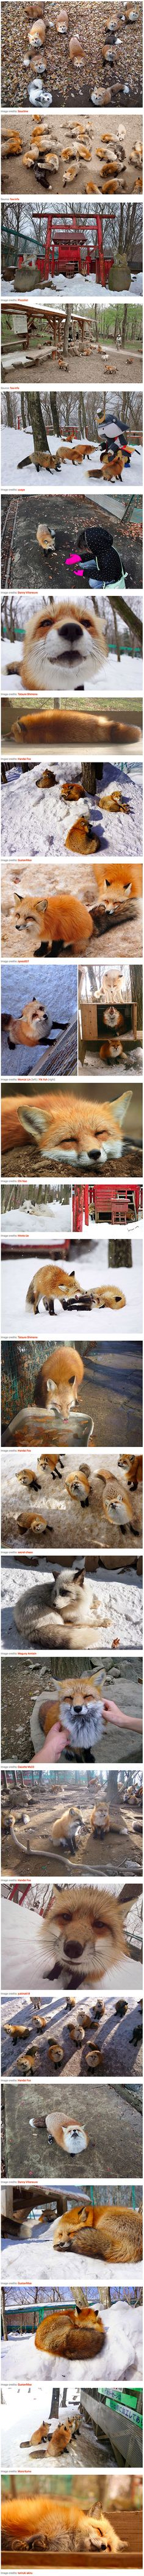 We've heard about the bunny island and cat island, but there's also a fox village, where six different species of fox romp and play together in a battle for your attention (and probably for your food, too). This magical oasis of foxiness is called Zao Fox Village, and it's located in Japan's Miyagi prefecture. For 100 yen (or about 85 US cents), visitors are provided with food, but because the foxes are not domesticated, they are cautioned against hand-feeding them or bringing small…